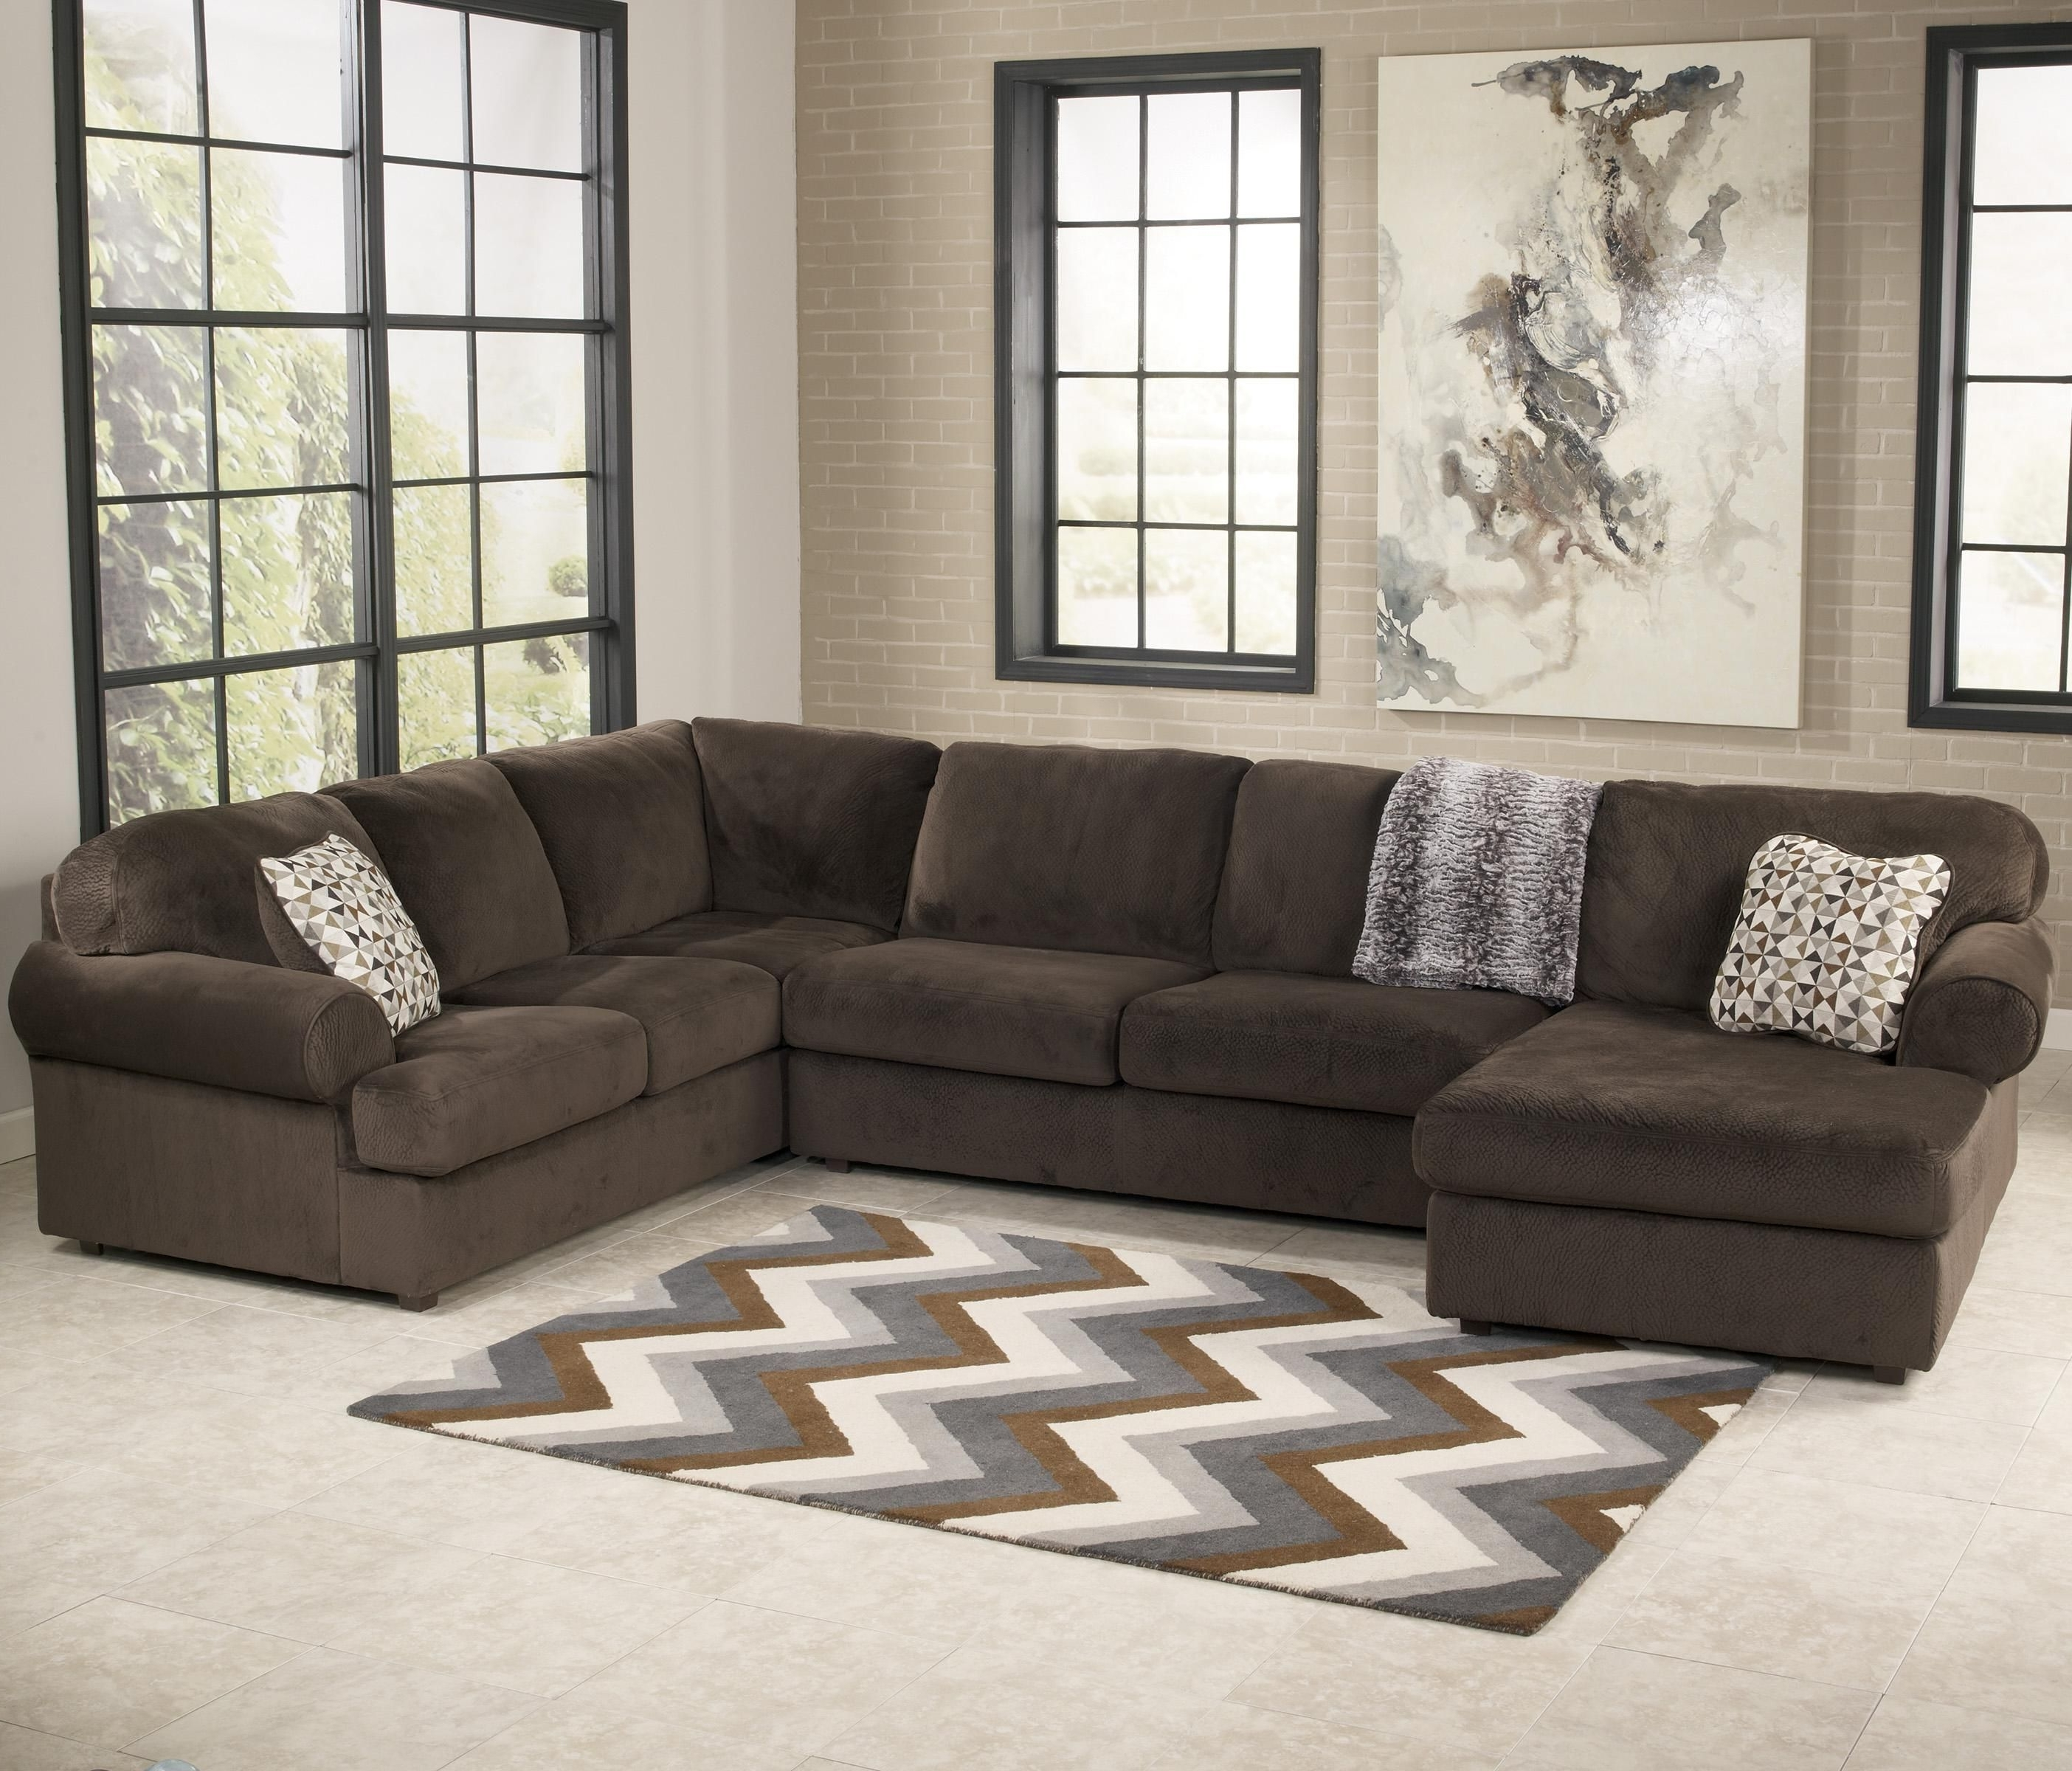 Sectional Sofas Austin Sleeper Sofa Tx Texas Leather Stock Photos Inside Famous Sectional Sofas At Austin (View 6 of 15)